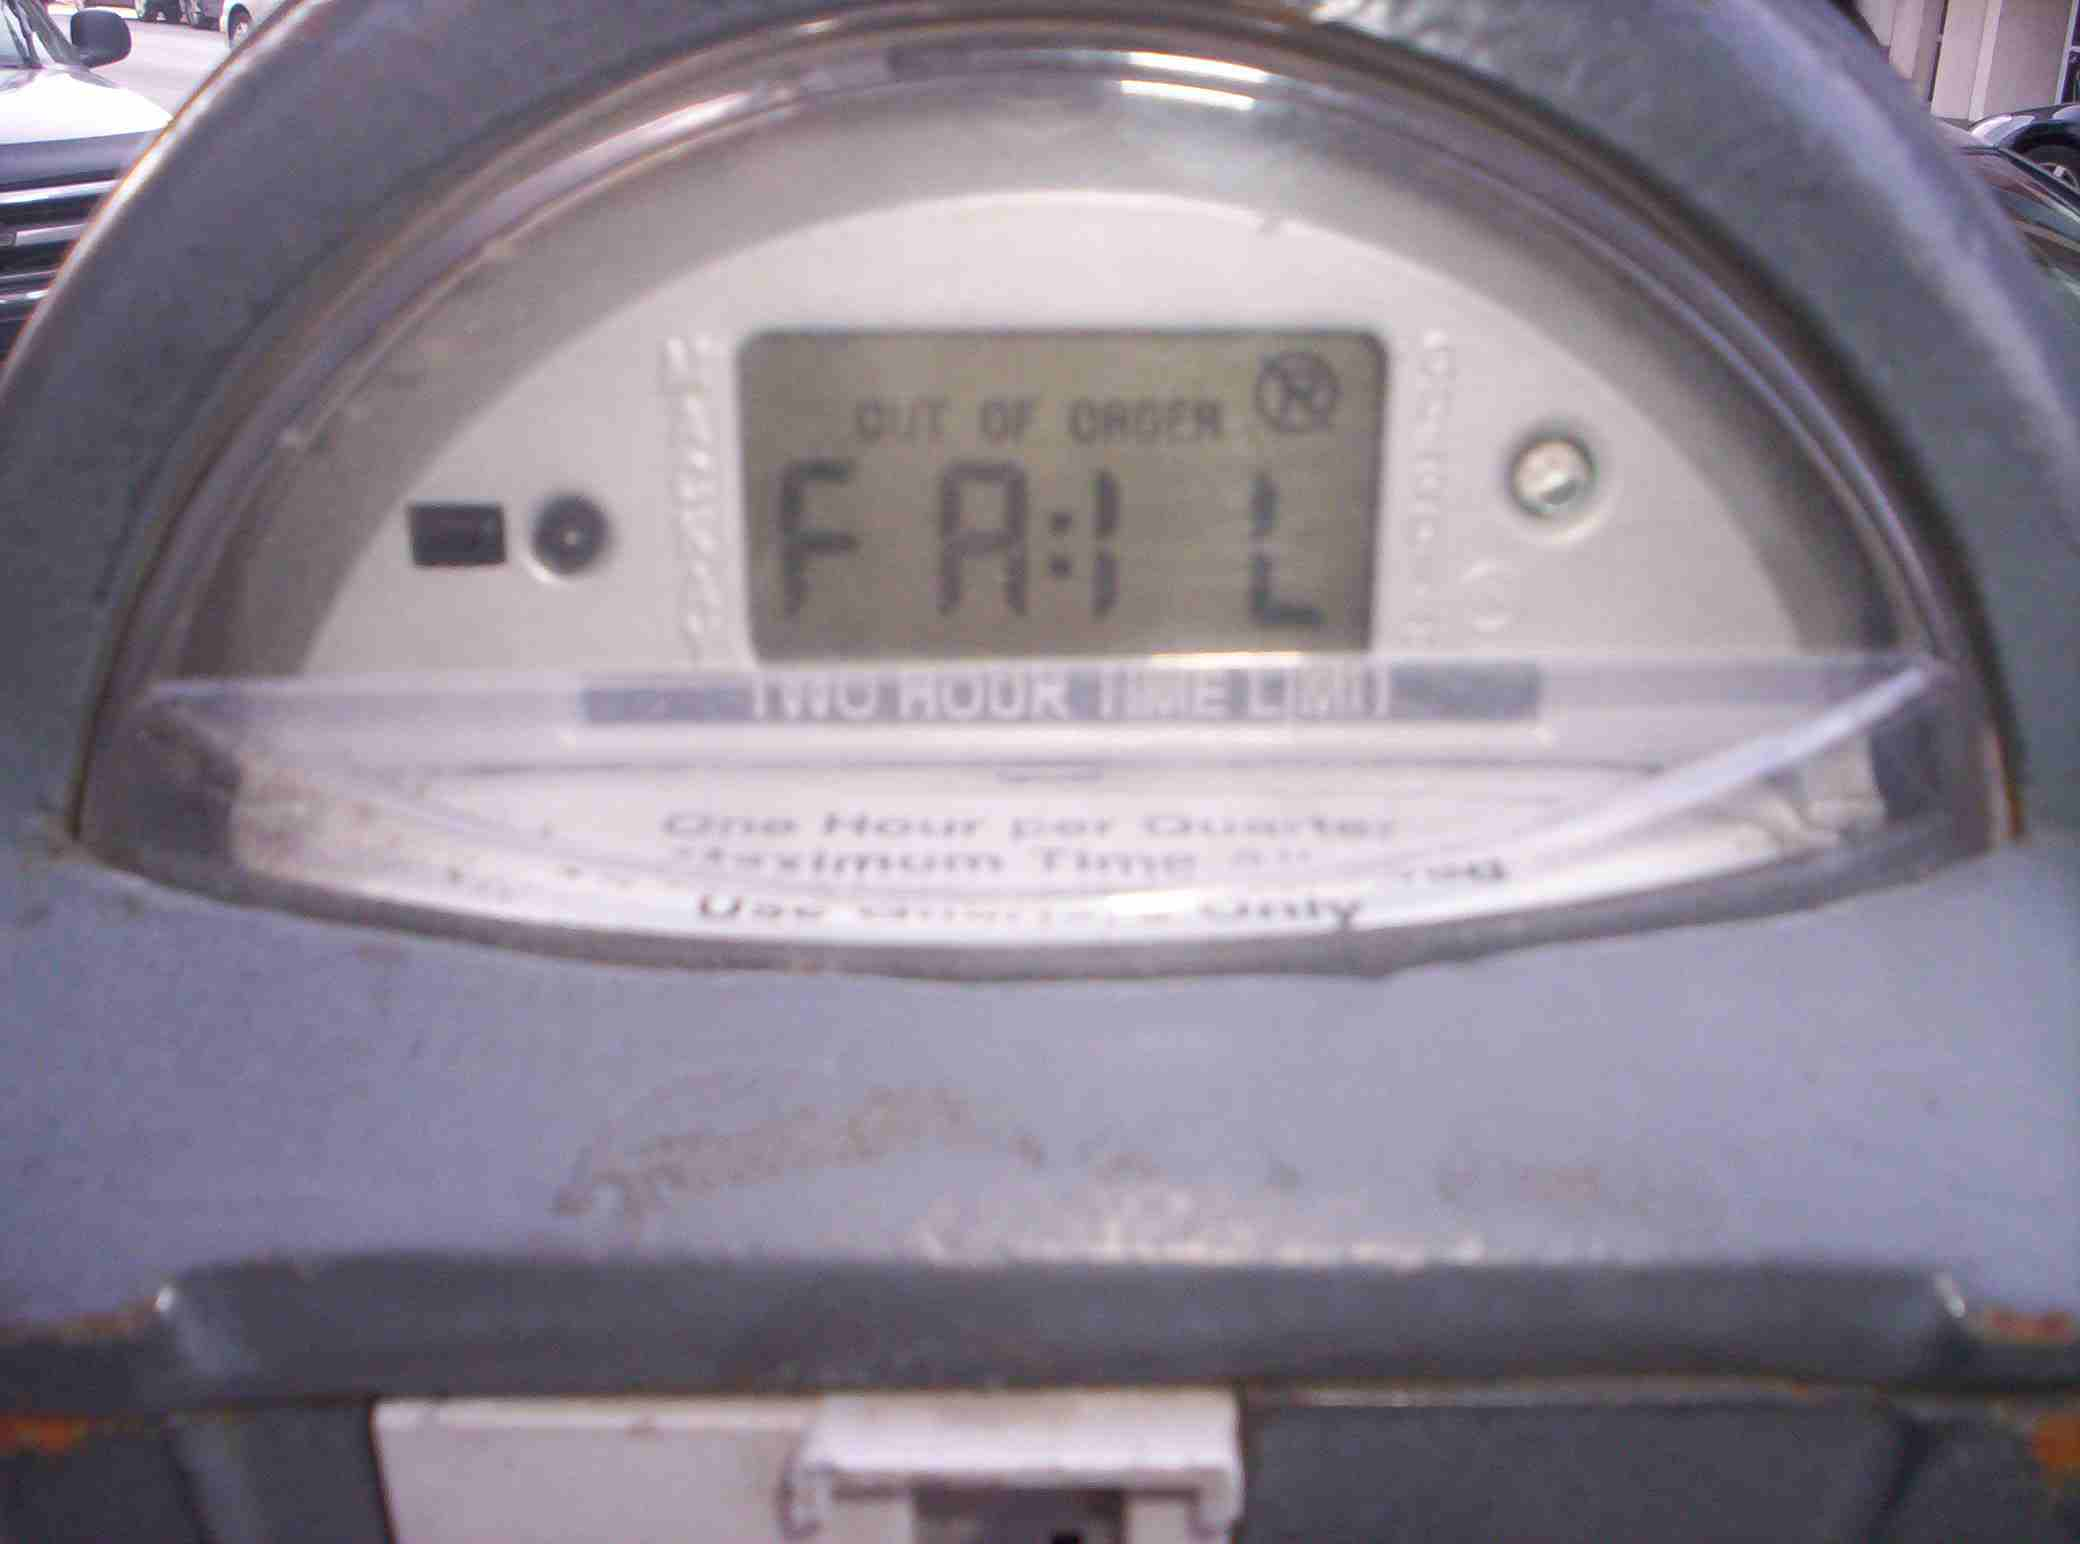 An old school parking meter from before the notorious Chicago parking meter lease came into being in 2008 adds its two cents.